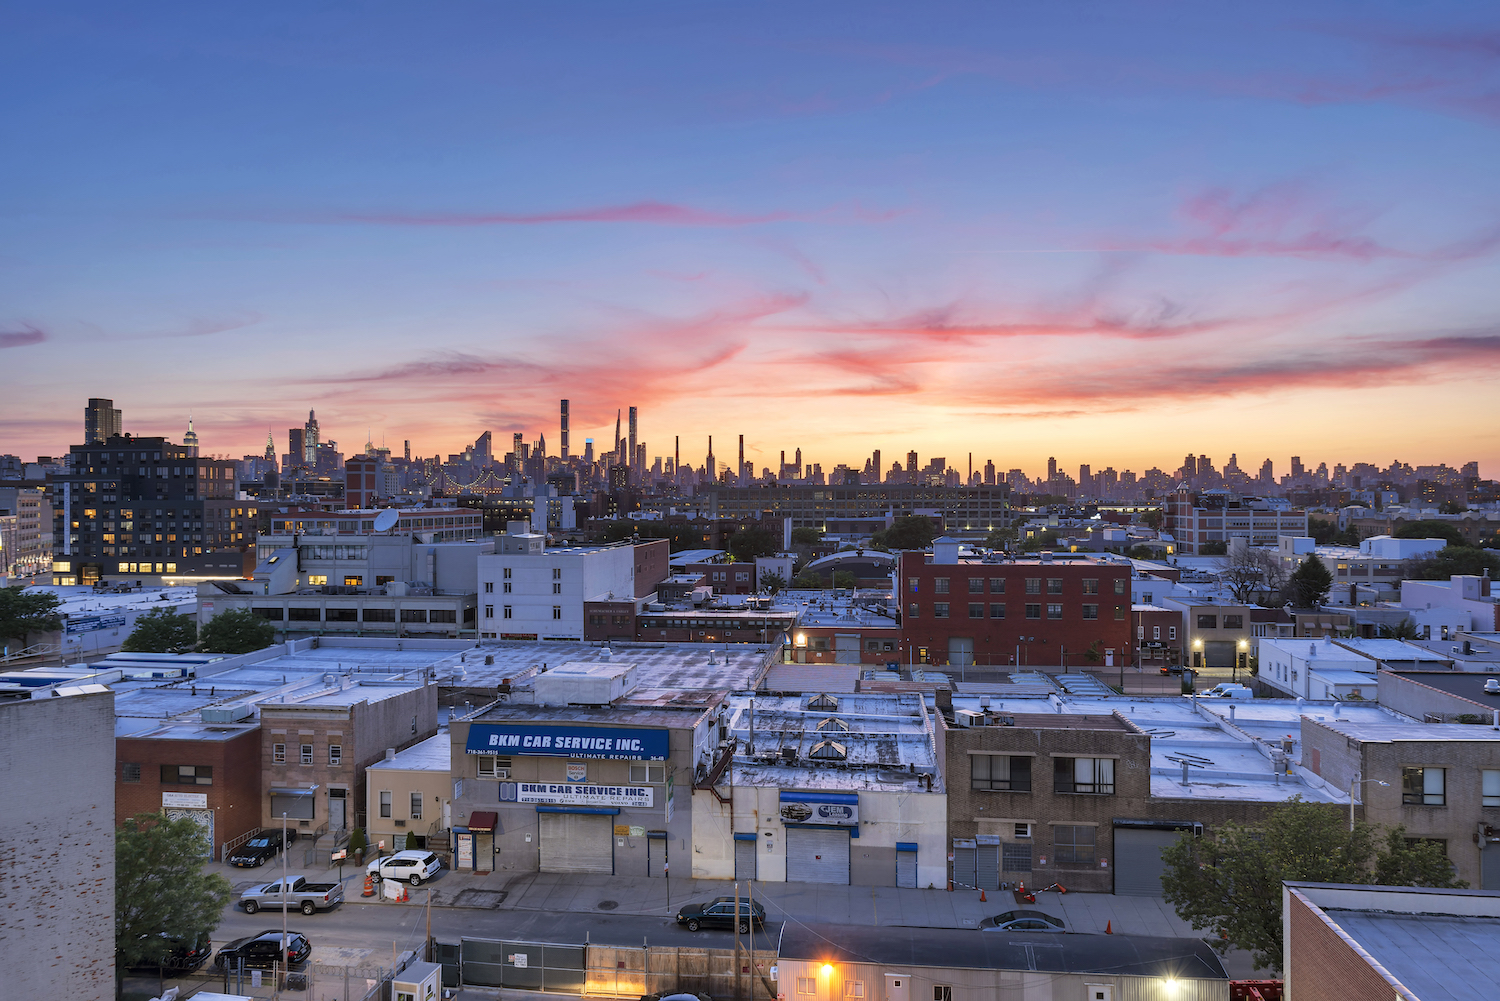 Views from The Astor LIC, at 36-20 Steinway Street in Queens